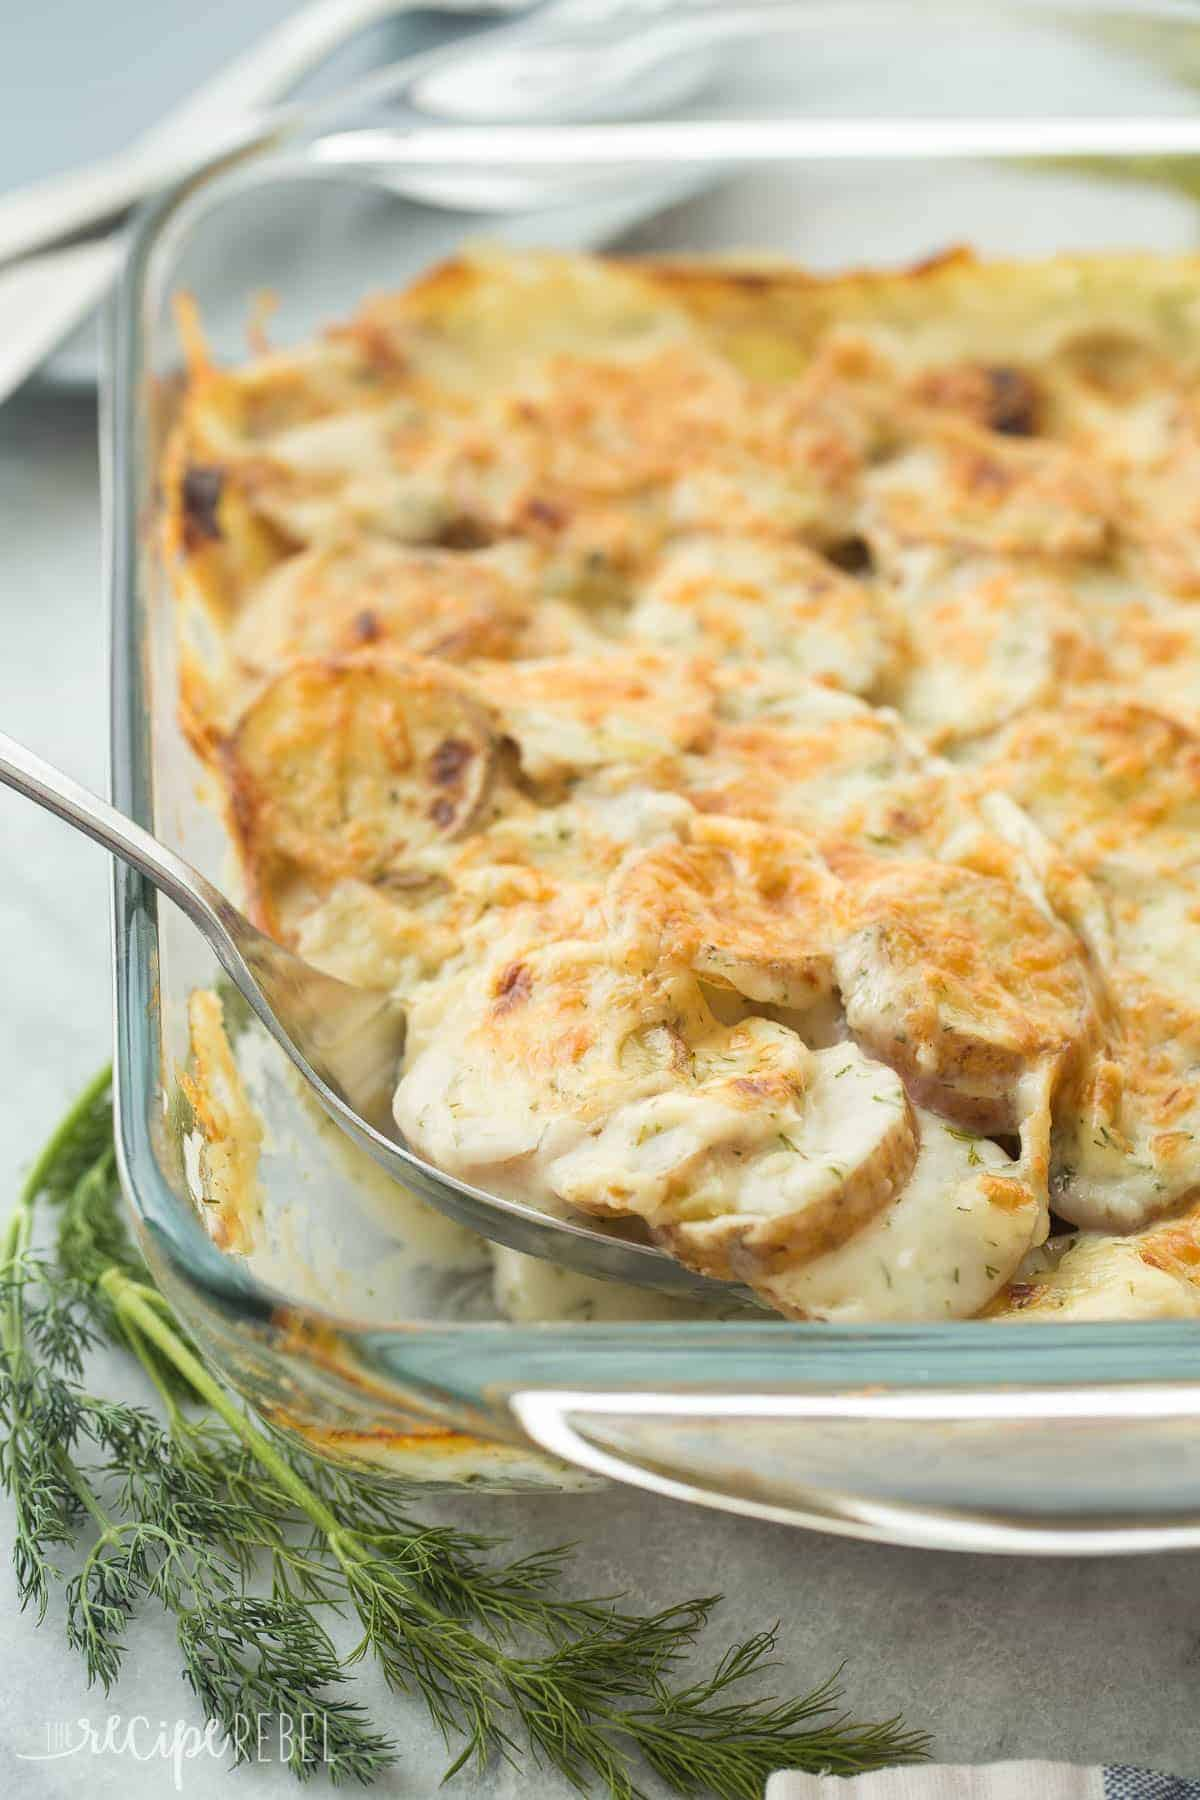 These Light Creamy Dill Scalloped Potatoes have a fraction of the fat as regular scalloped potatoes but you'd never know! Not a fan of dill? Substitute herbs of your choice!